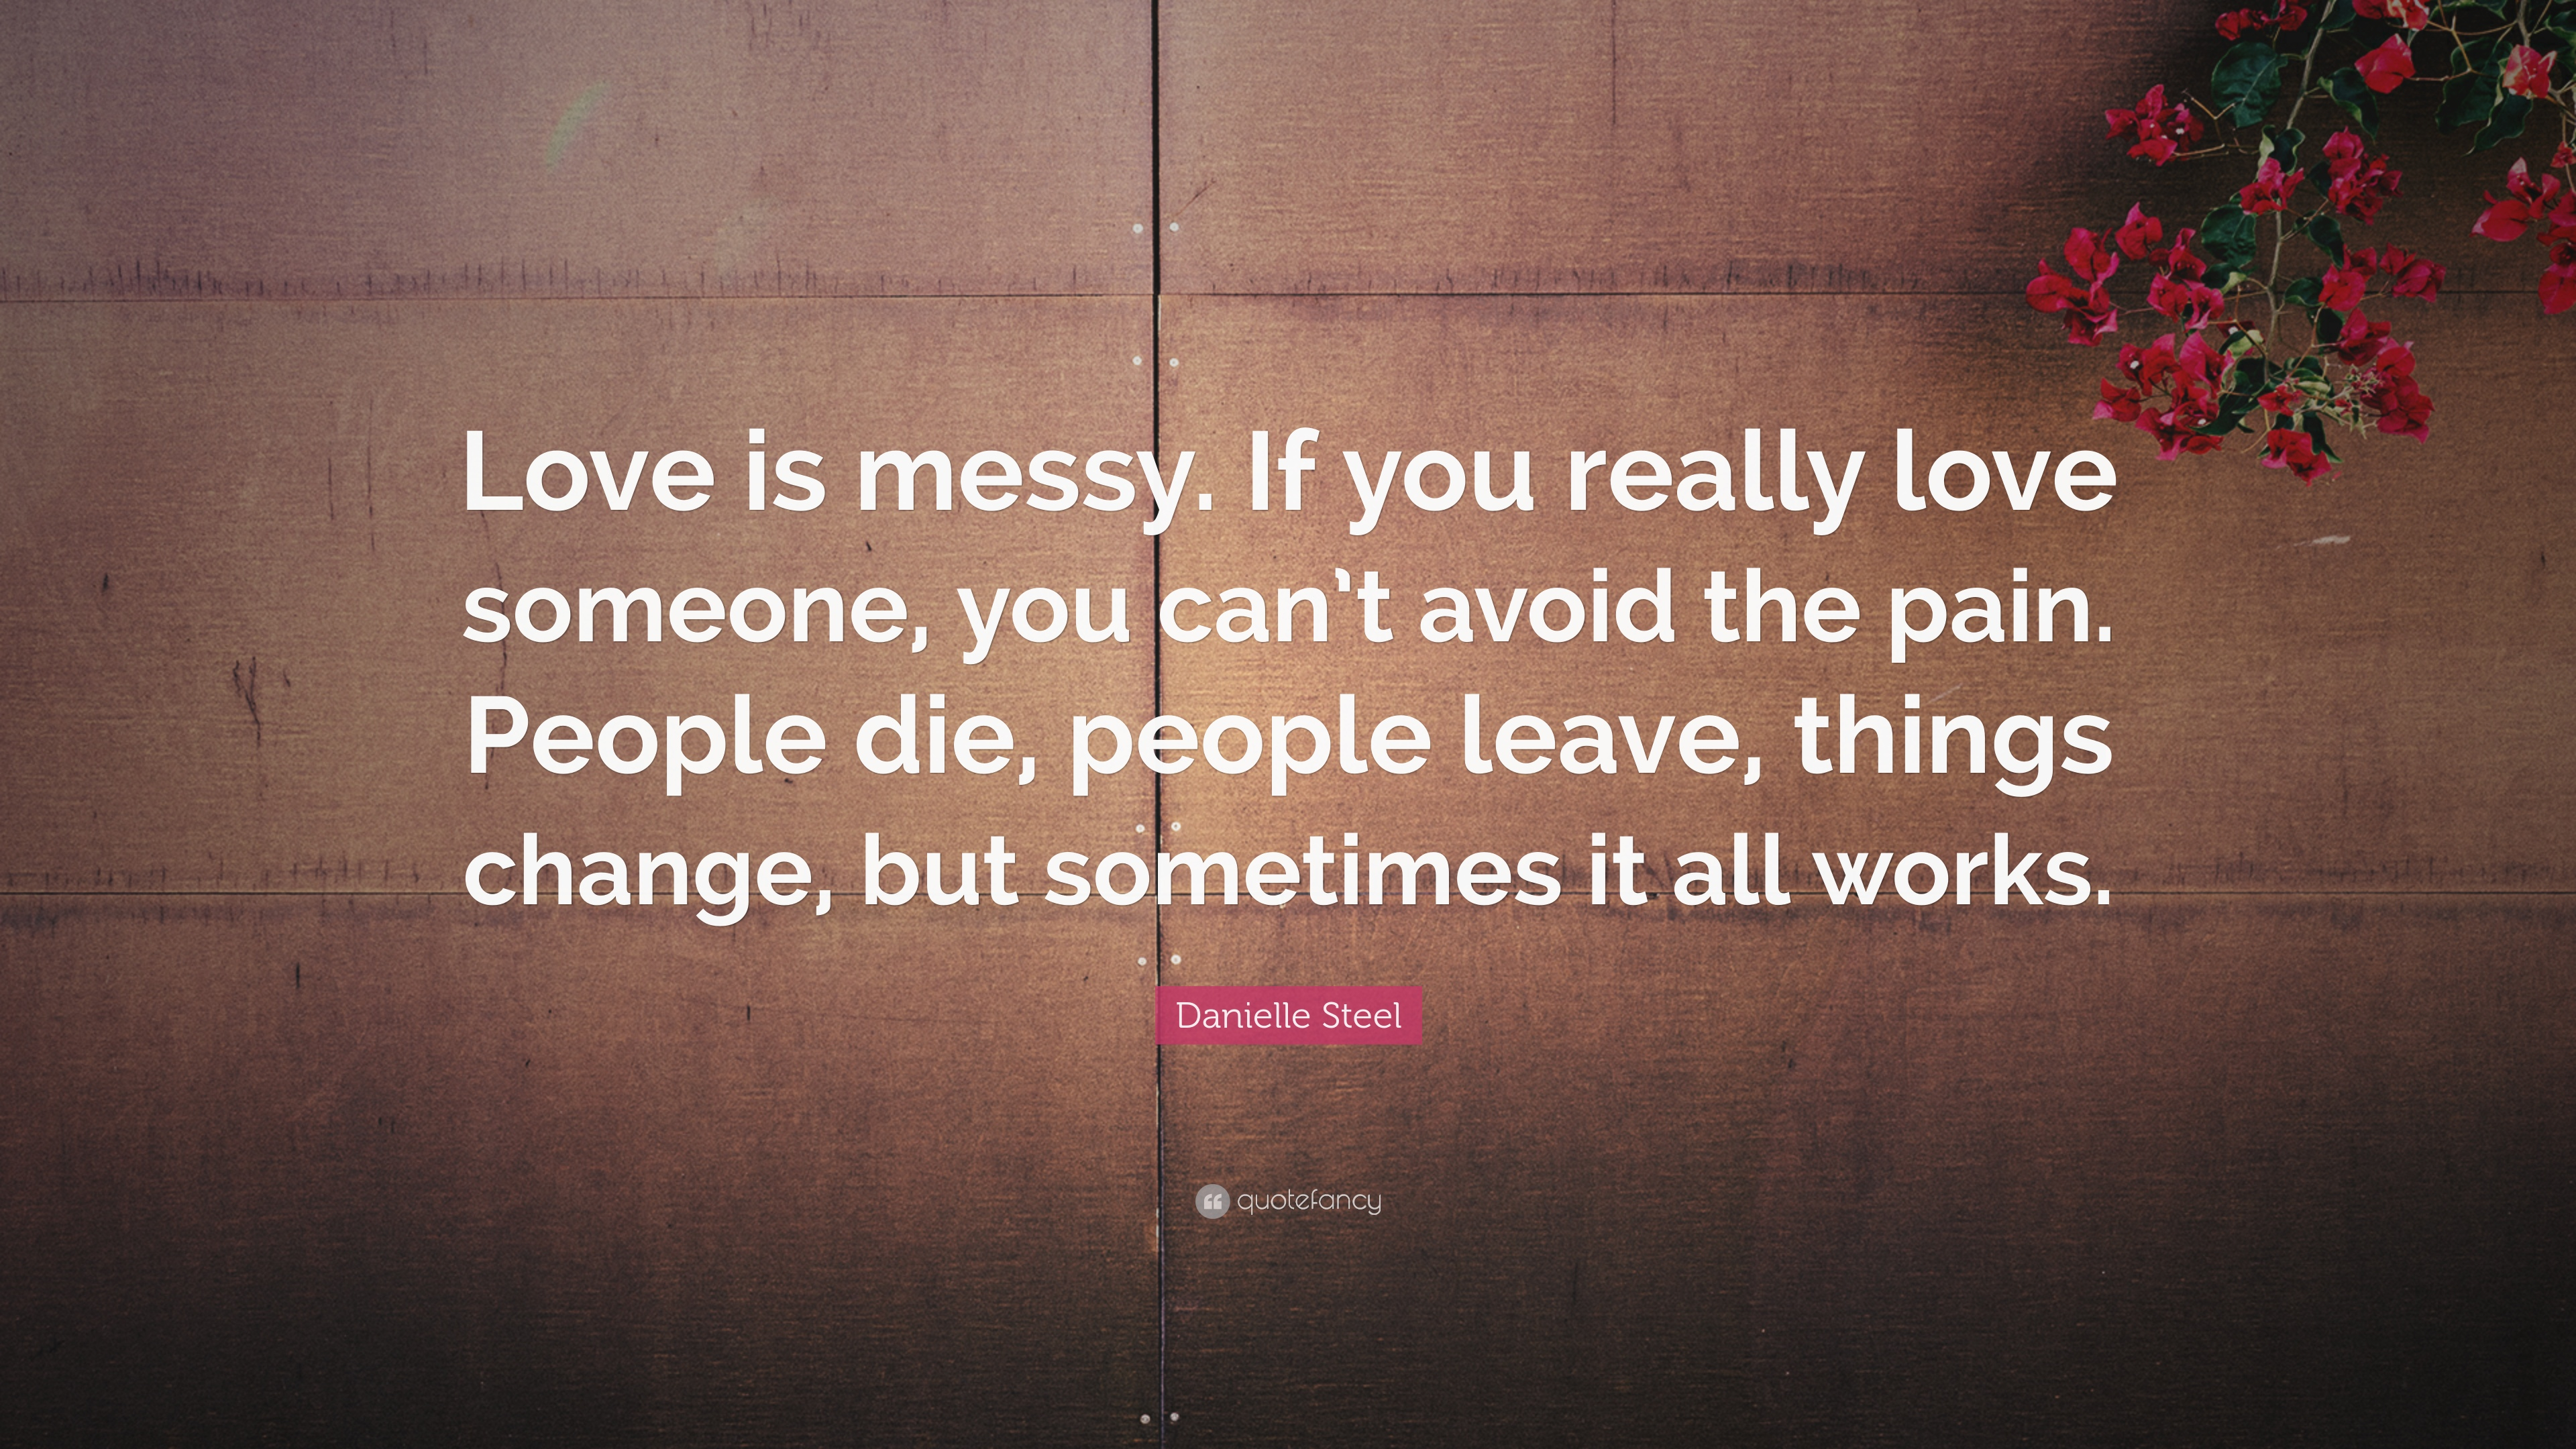 Danielle Steel Quote: Love is messy. If you really love